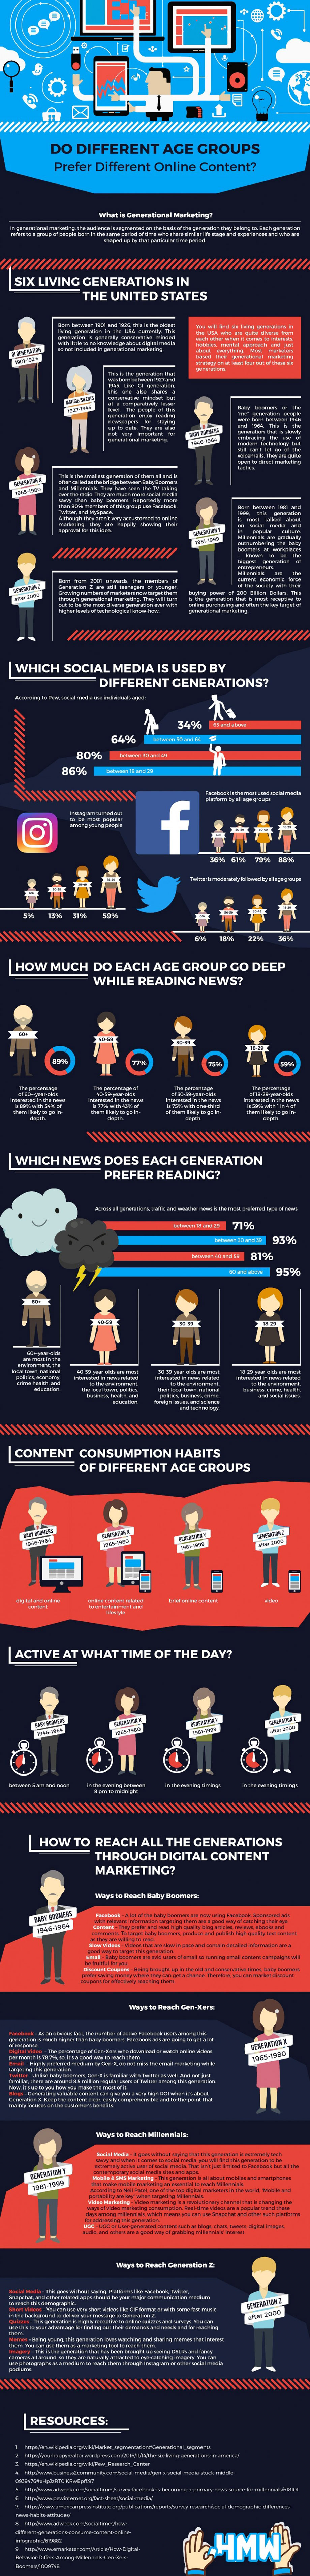 Generational Marketing: Reaching Customers One Age Group at a Time [Infographic]